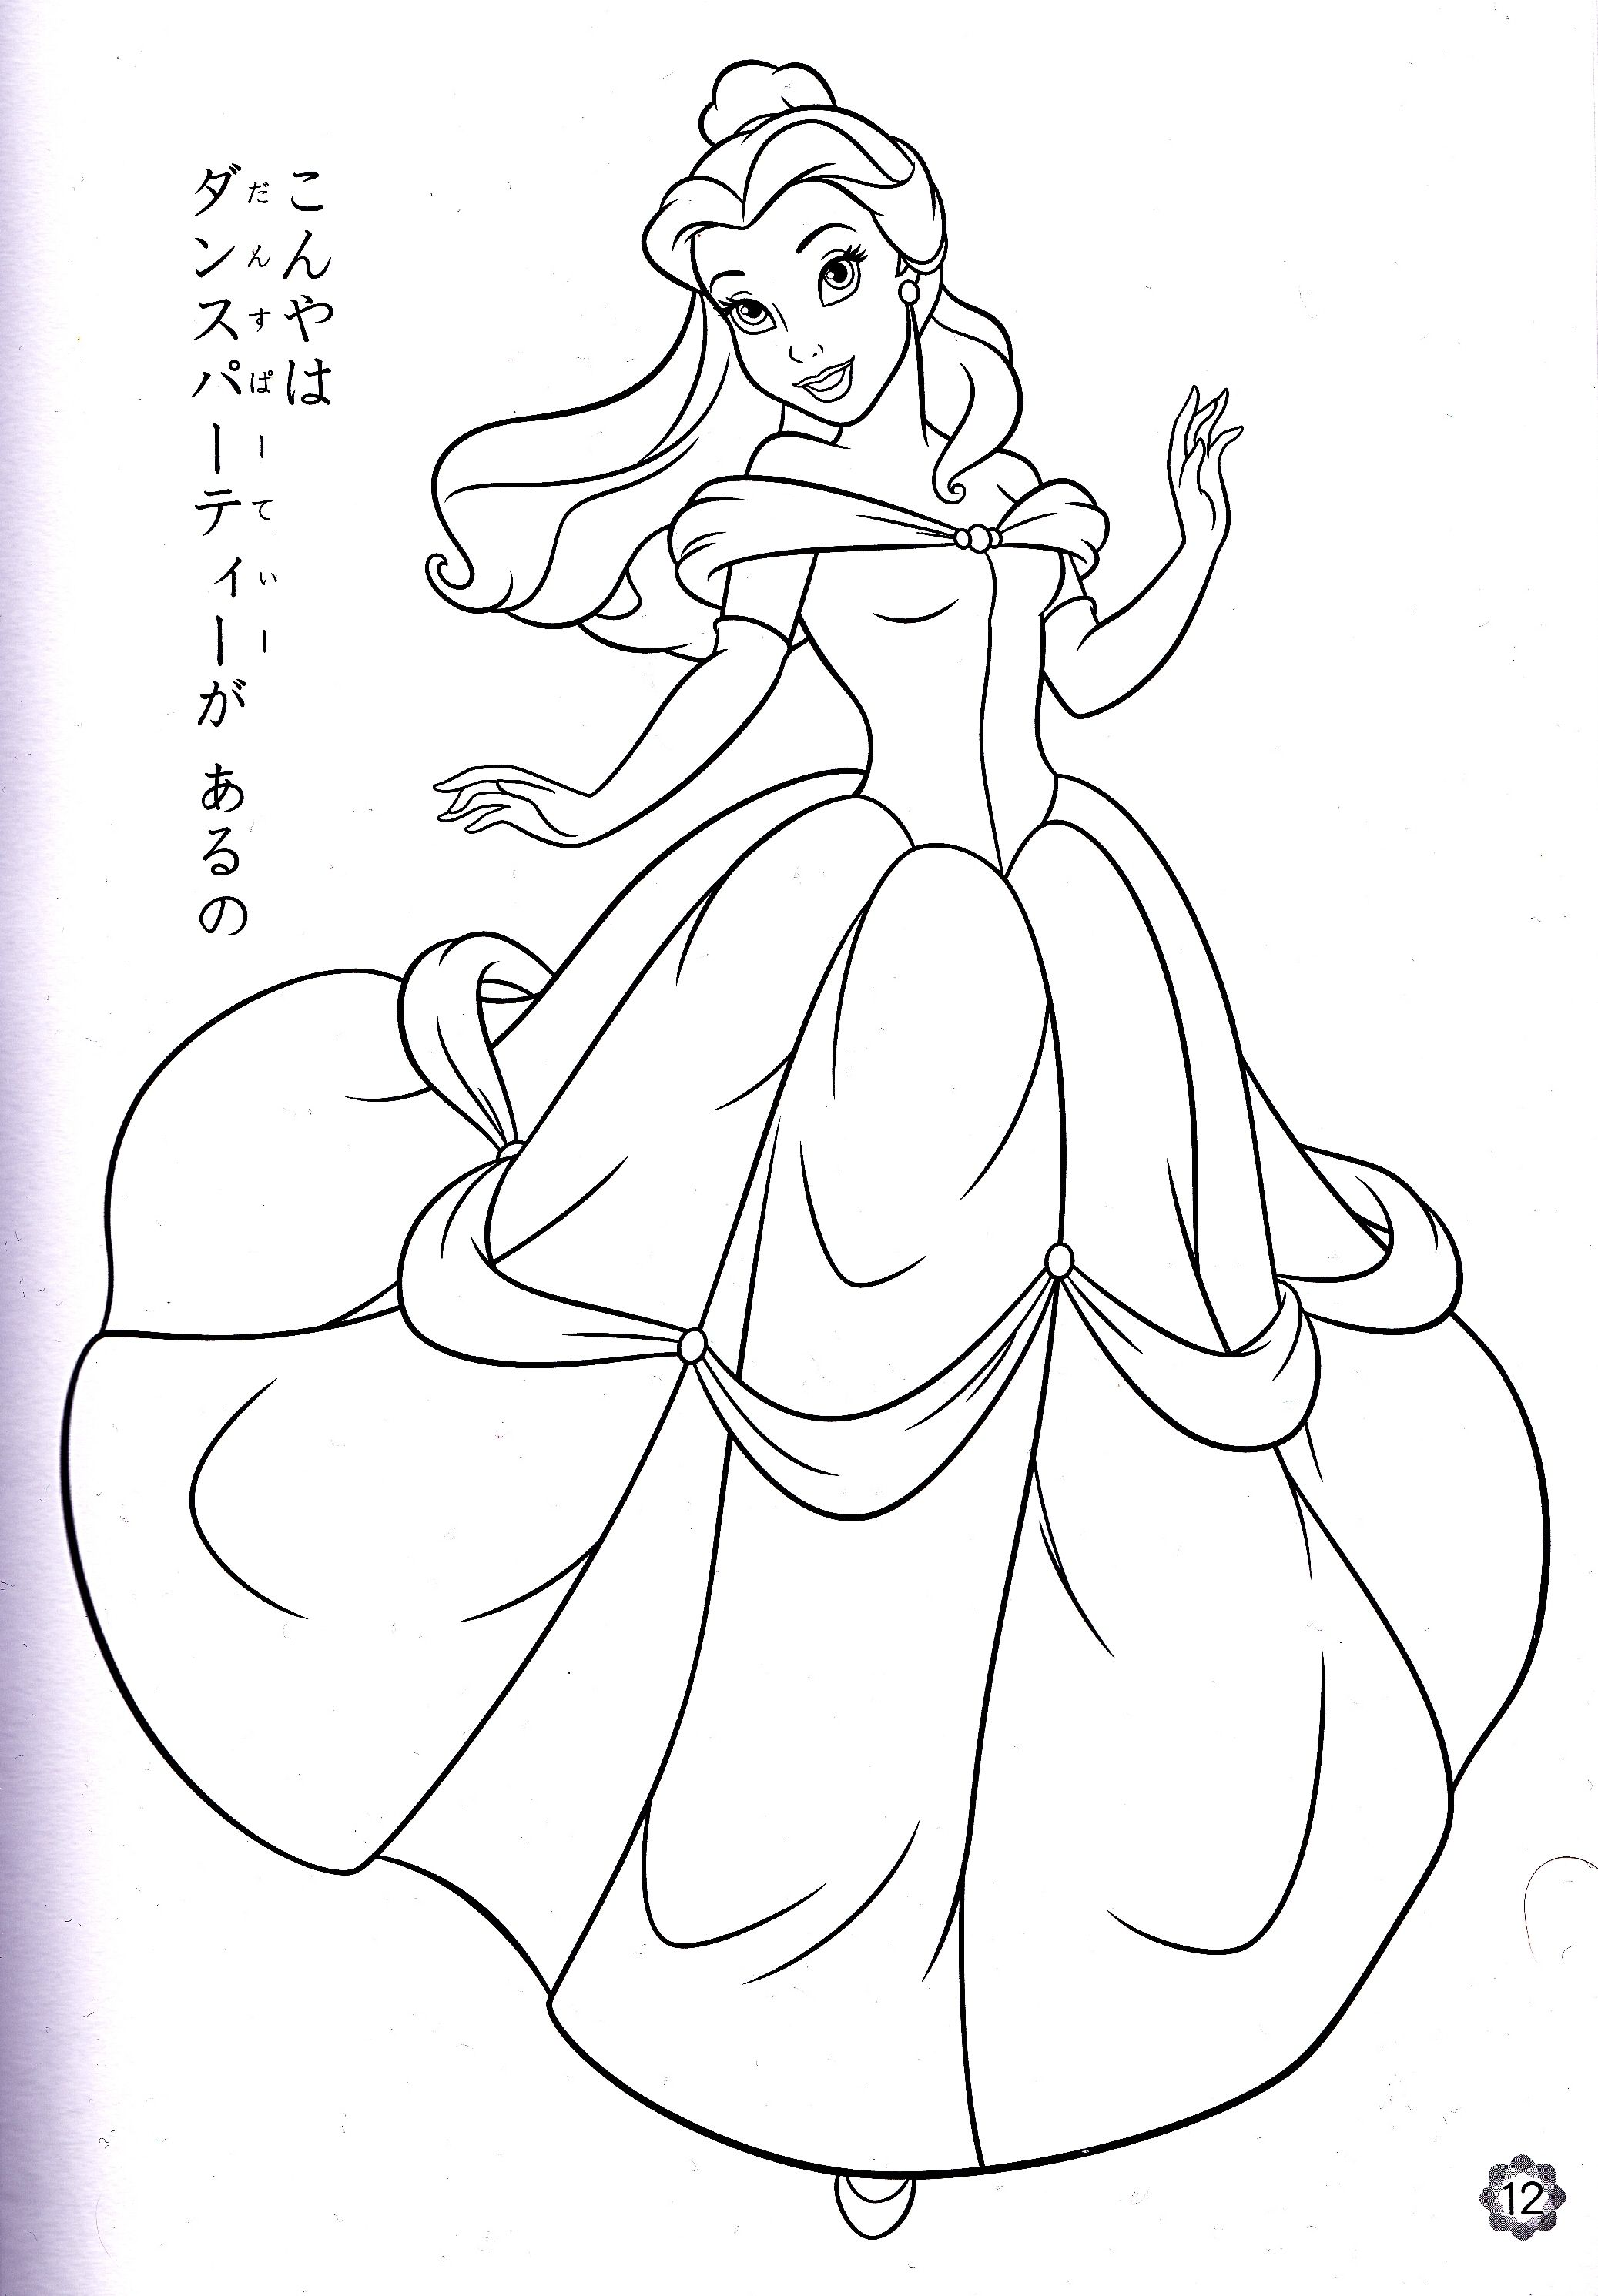 Belle Disney Coloring Pages Coloring Pages Allow Kids To Accompany Their Favorit Disney Princess Coloring Pages Princess Coloring Pages Belle Coloring Pages